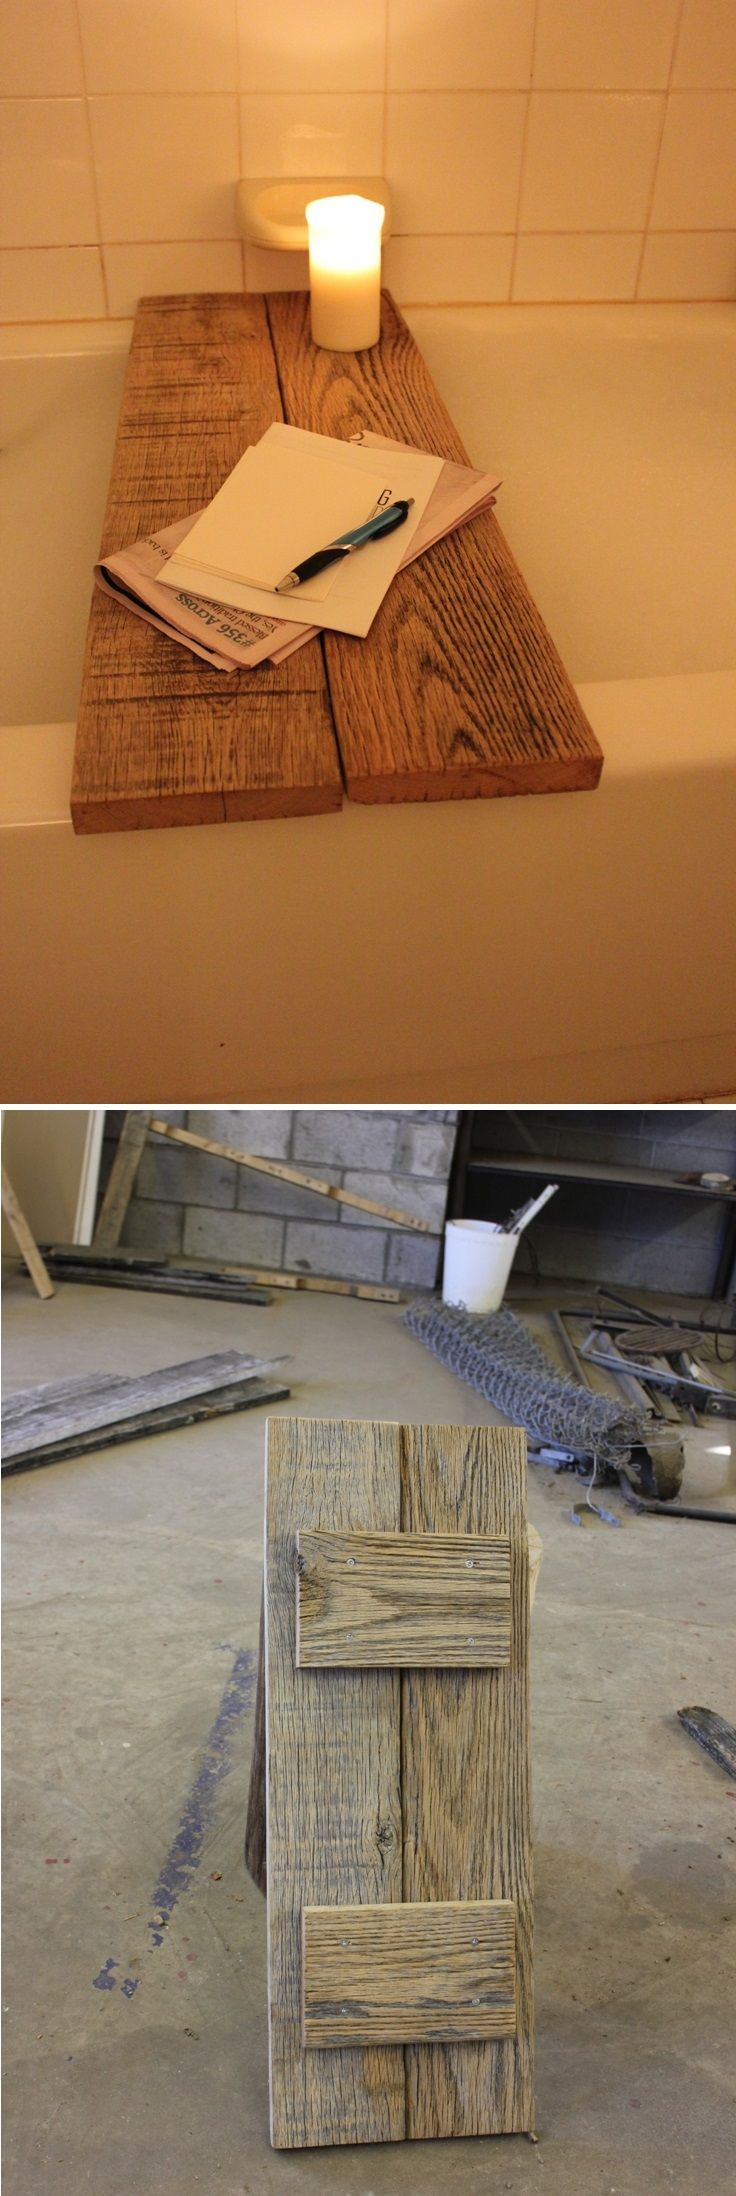 Bubble Time: DIY Reclaimed Oak Bathtub Caddy – Let Alan know I found projects! @